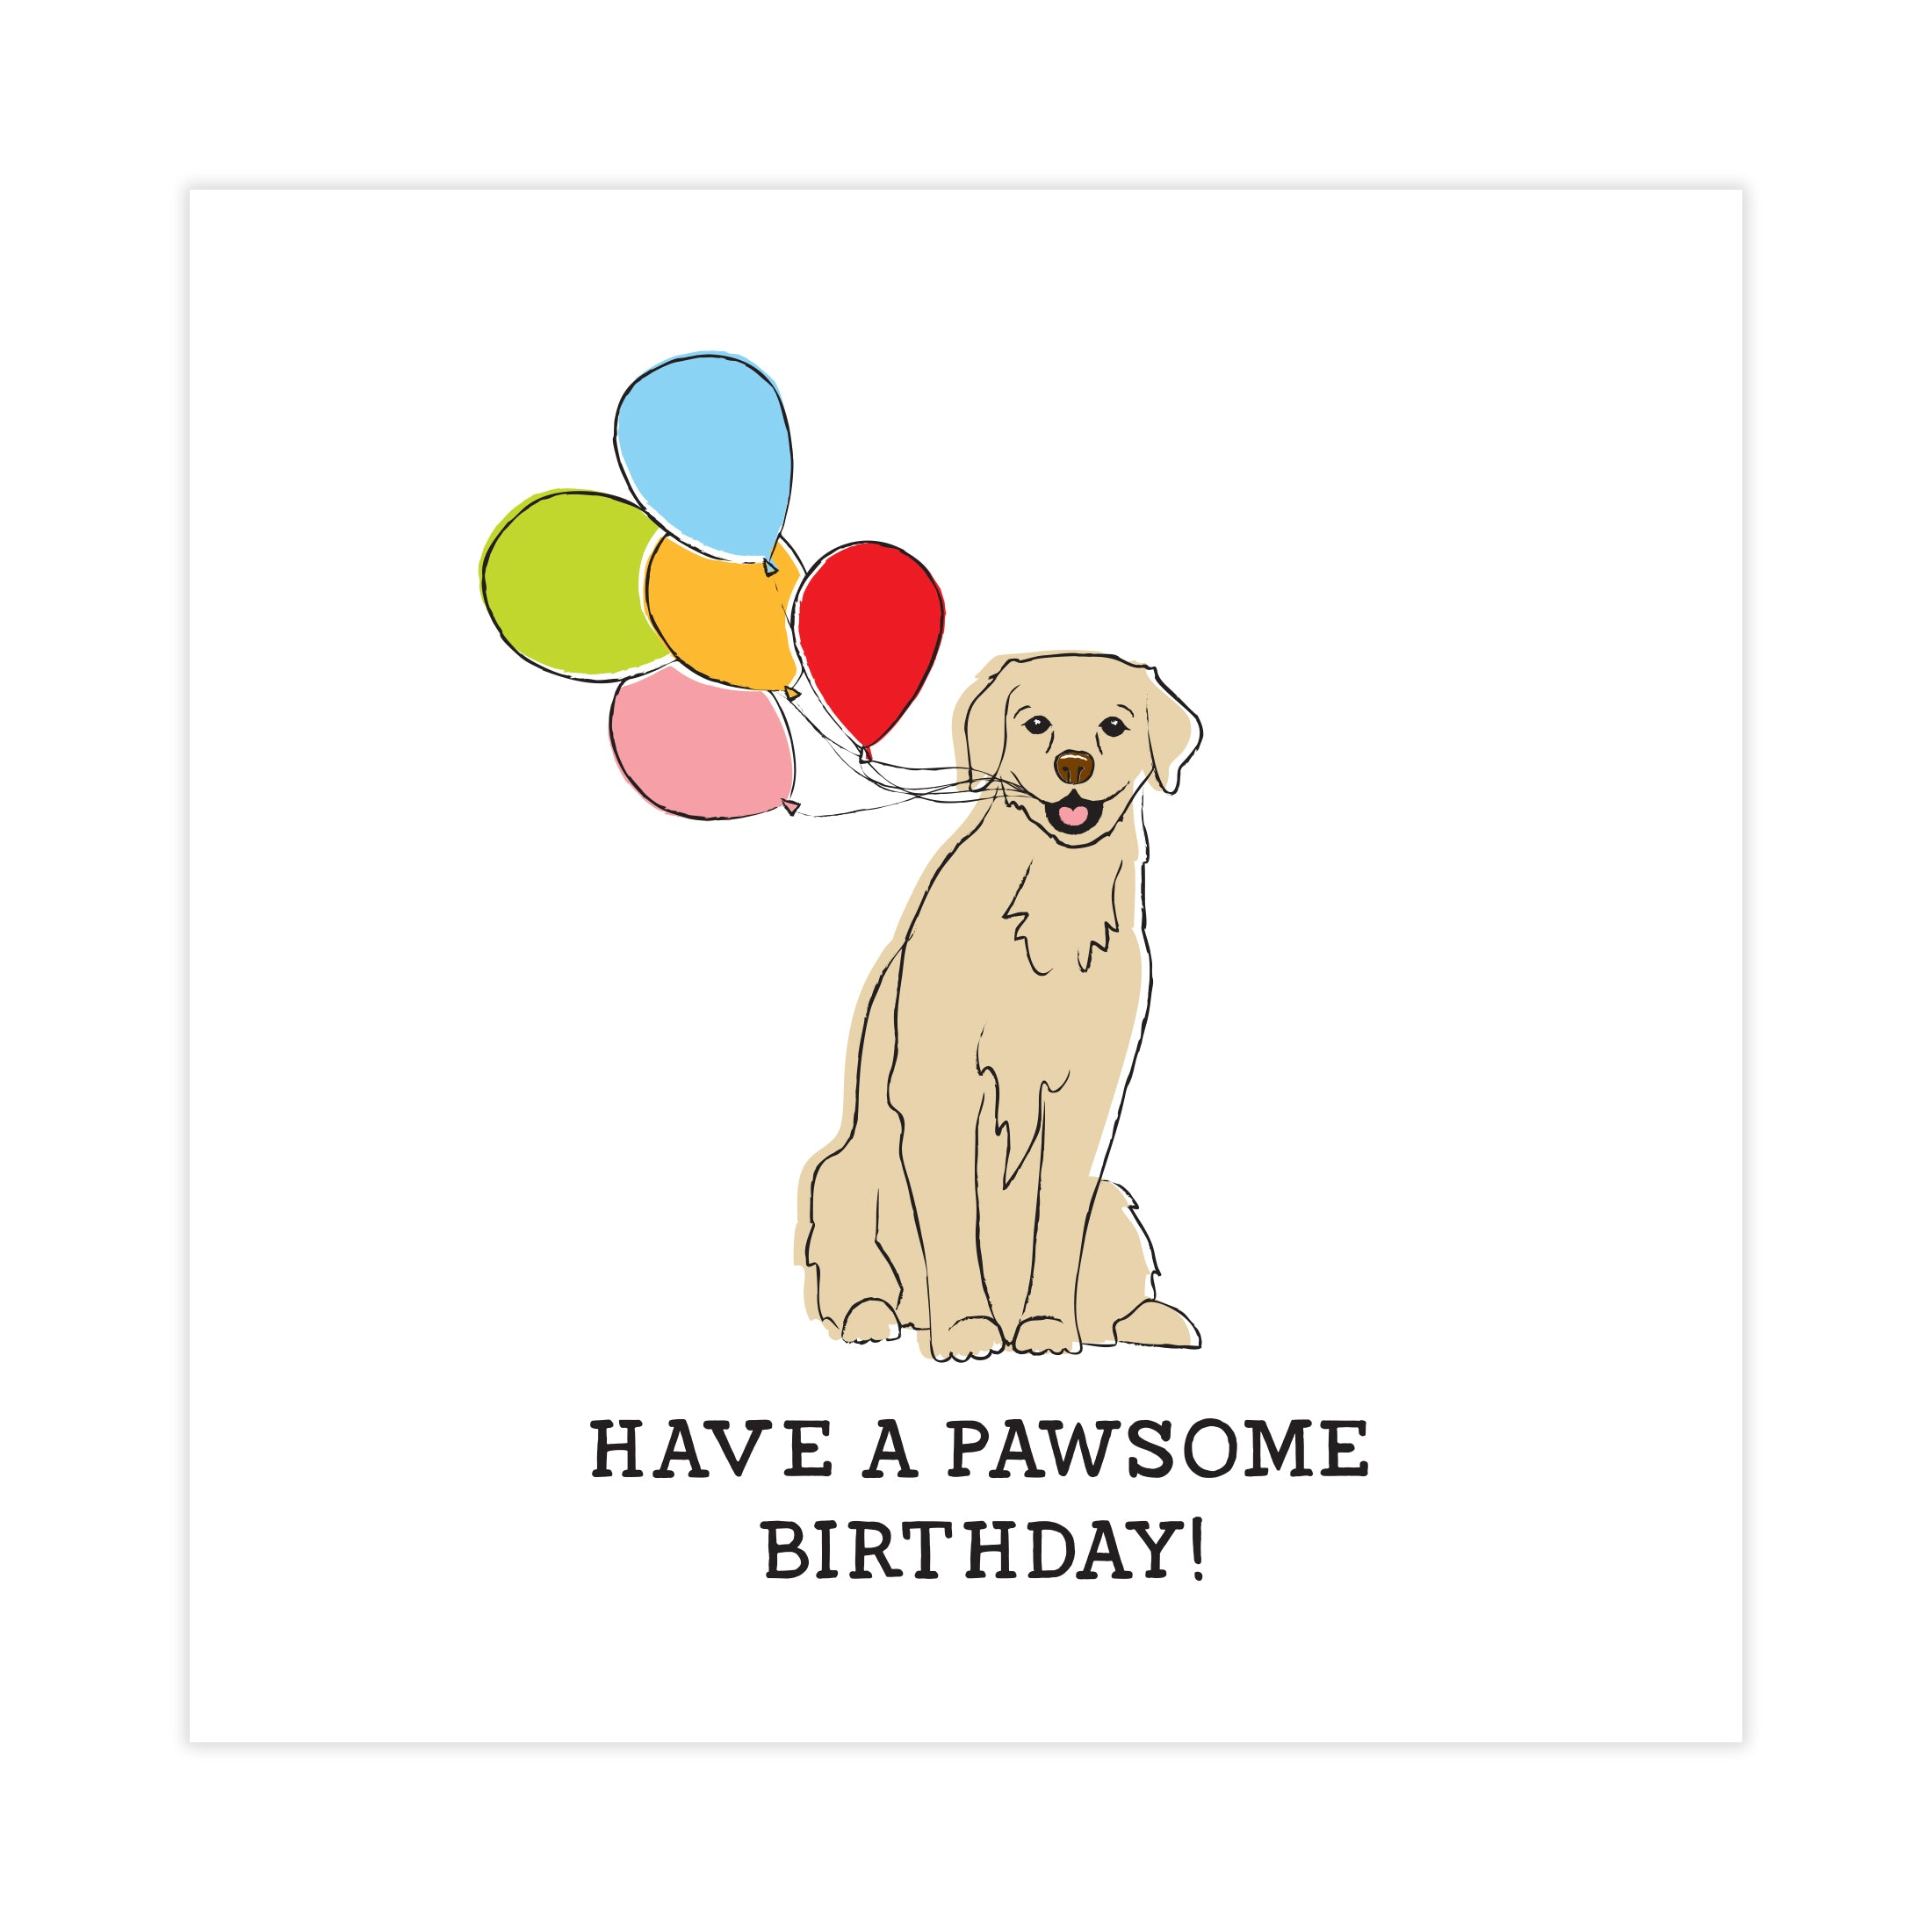 Have a pawsome birthday card toffie have a pawsome birthday card bookmarktalkfo Image collections